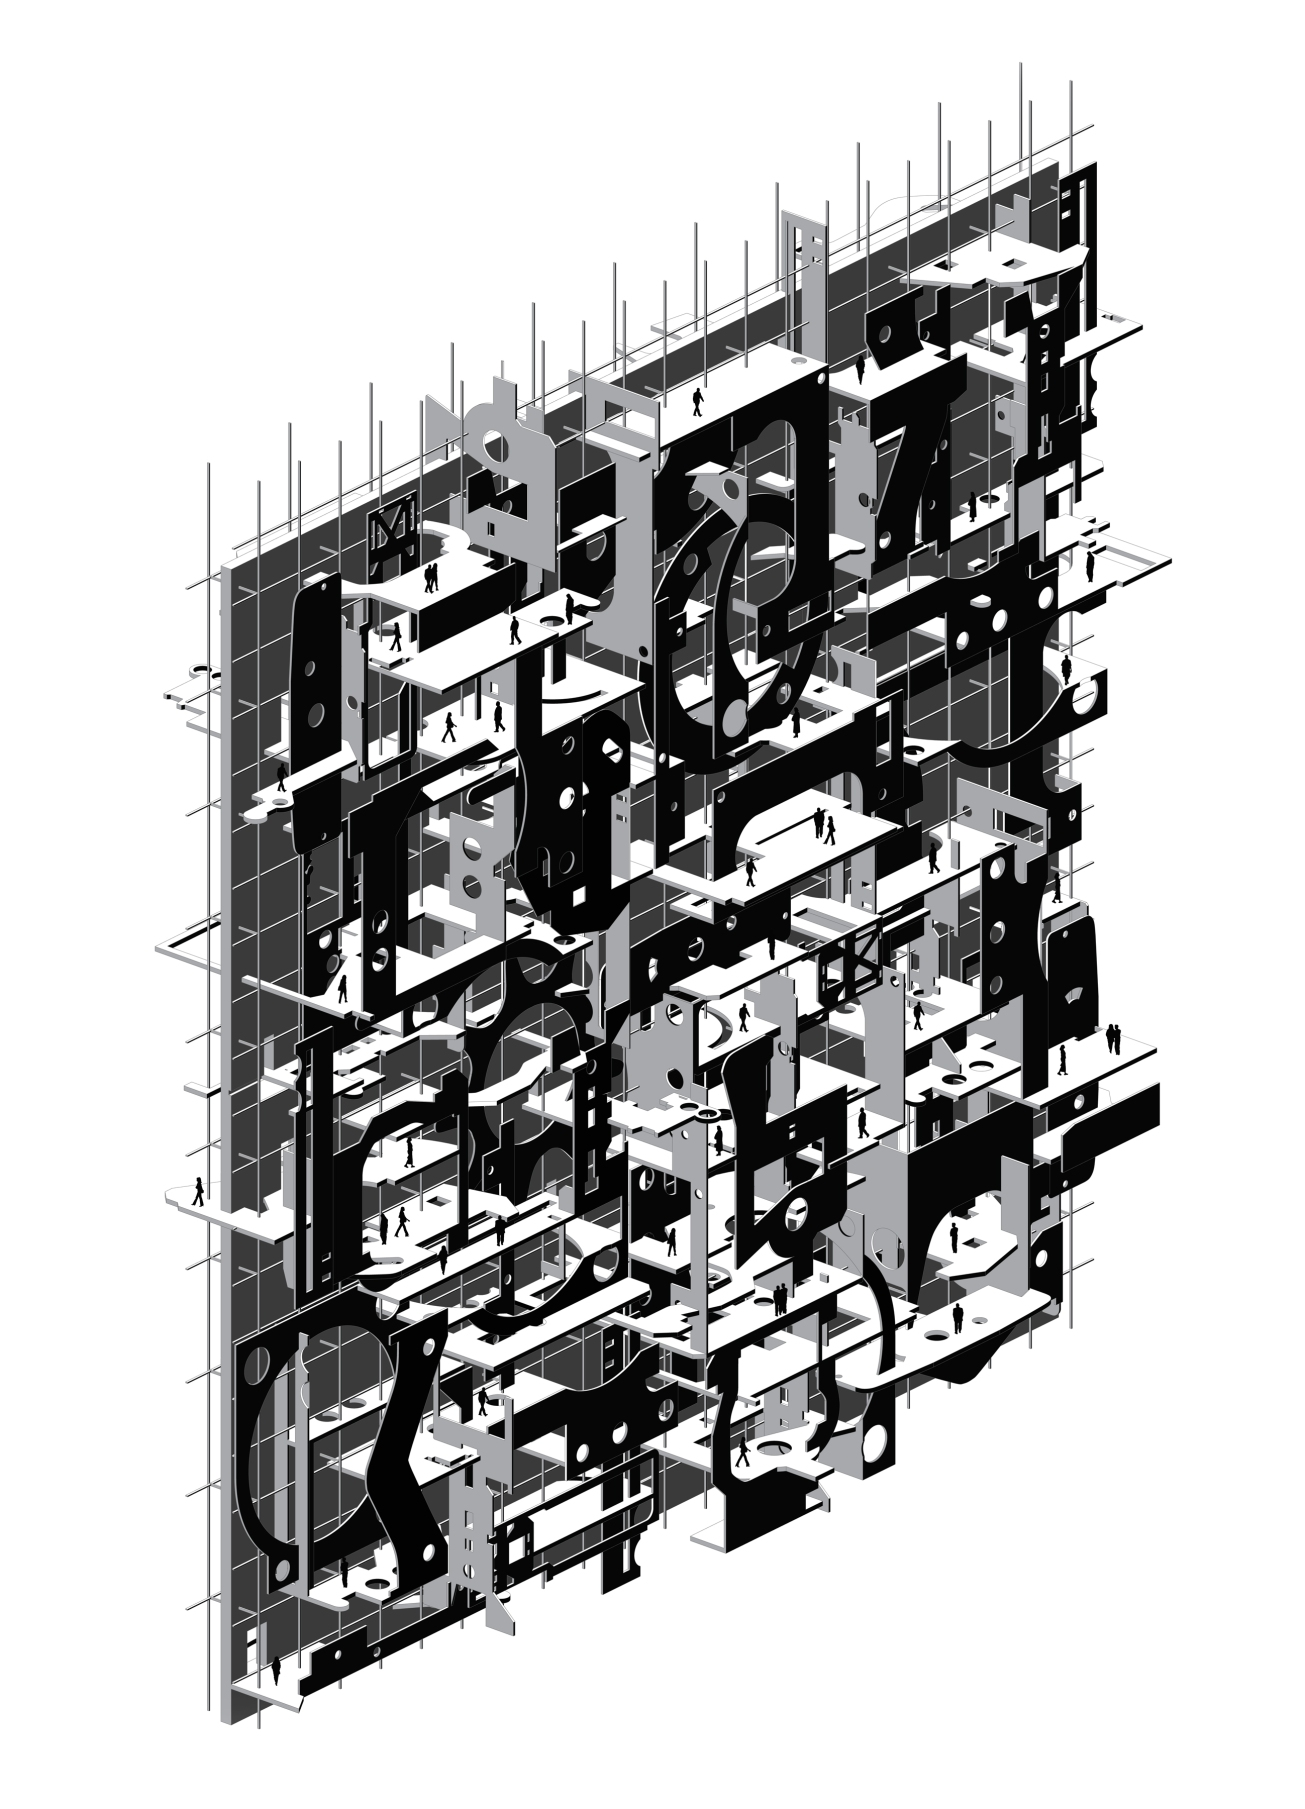 3. axonometric